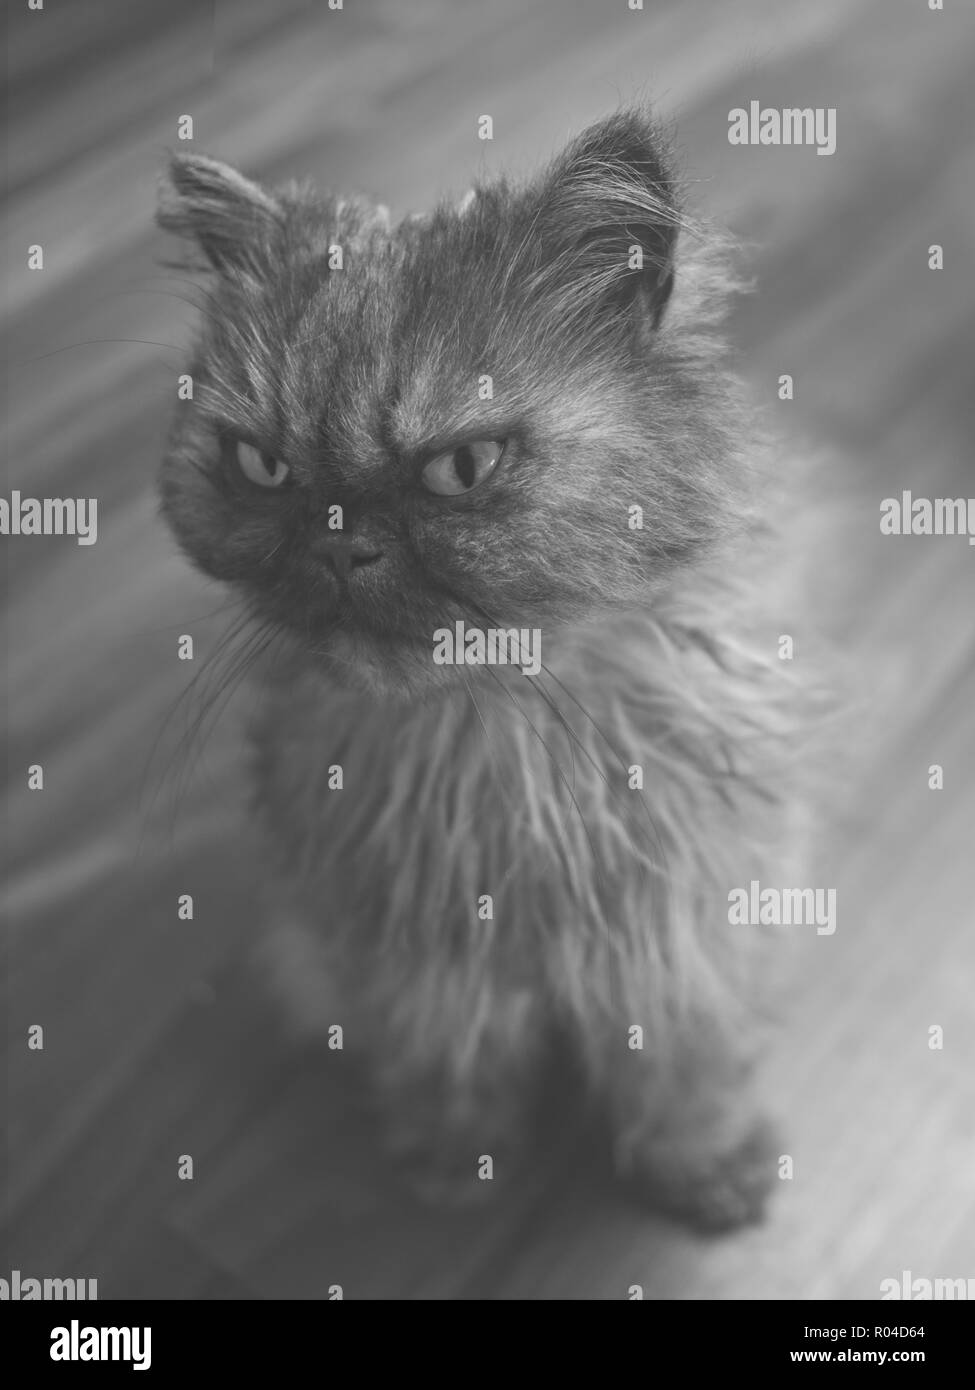 Young persian cat looking away - Black and white portrait. - Stock Image